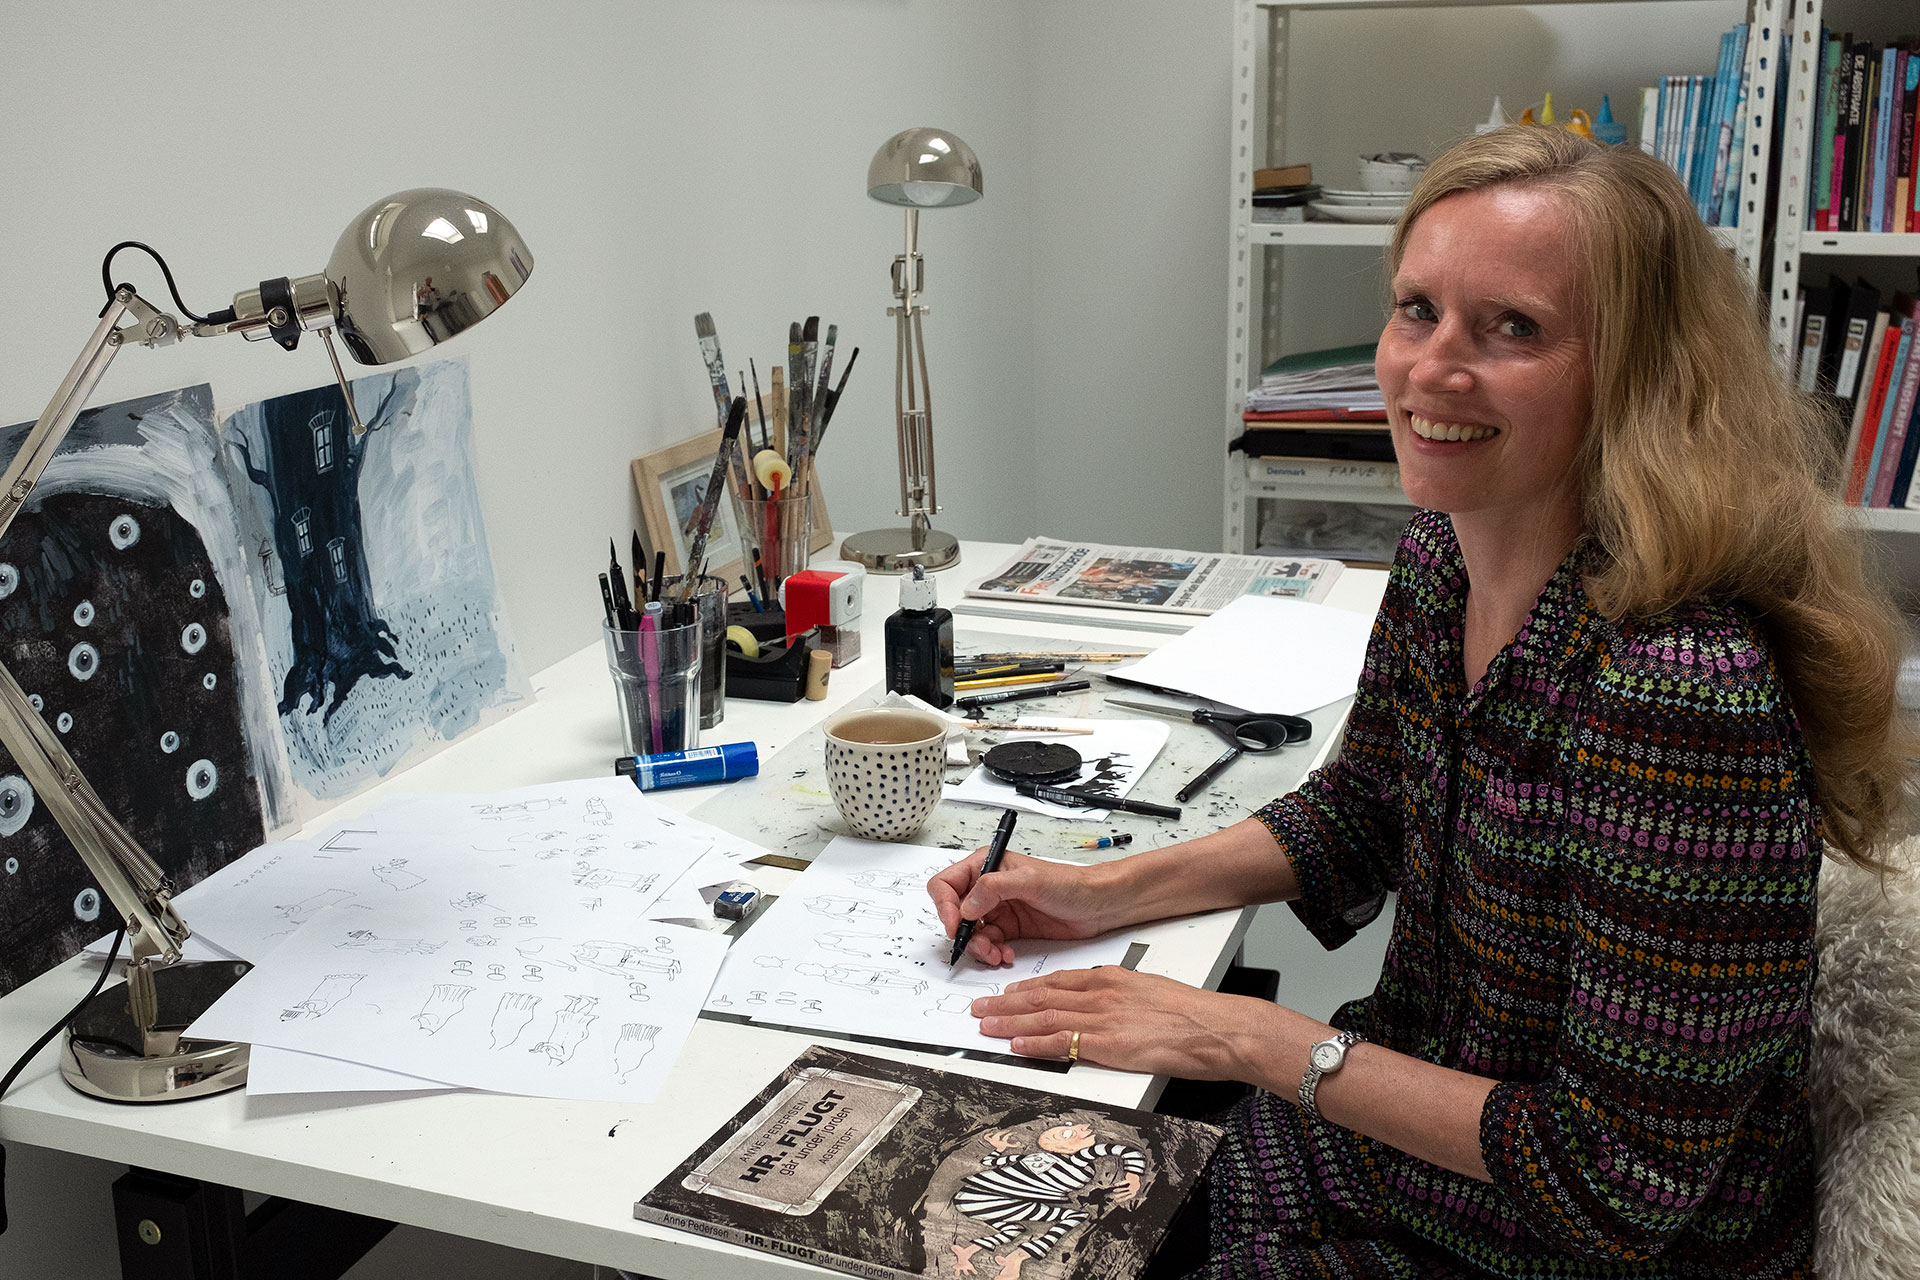 Illustrator Anne Pedersen